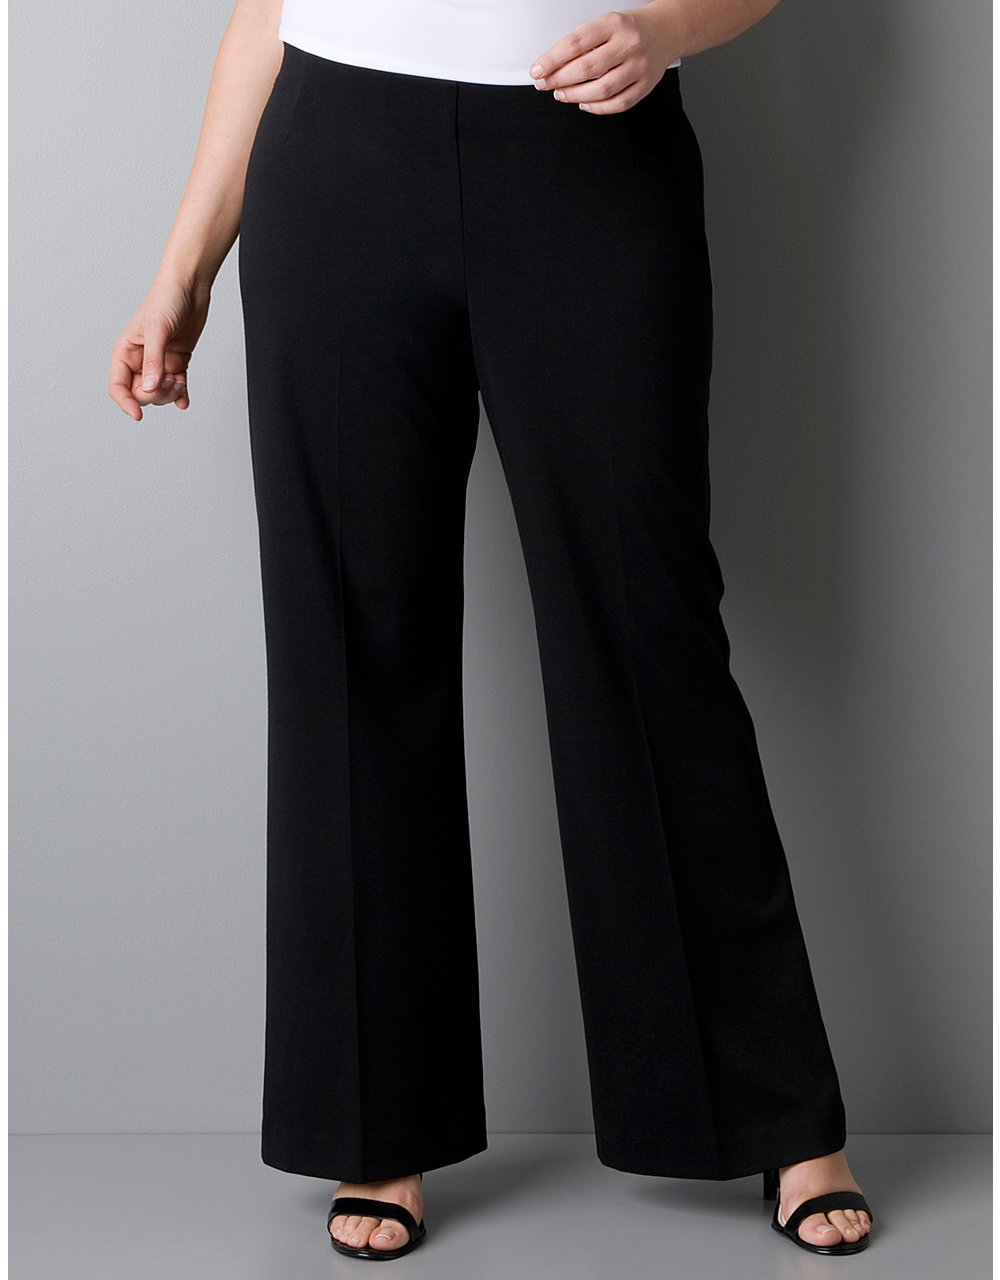 Plus size ponte knit wide leg pant | Lane Bryant